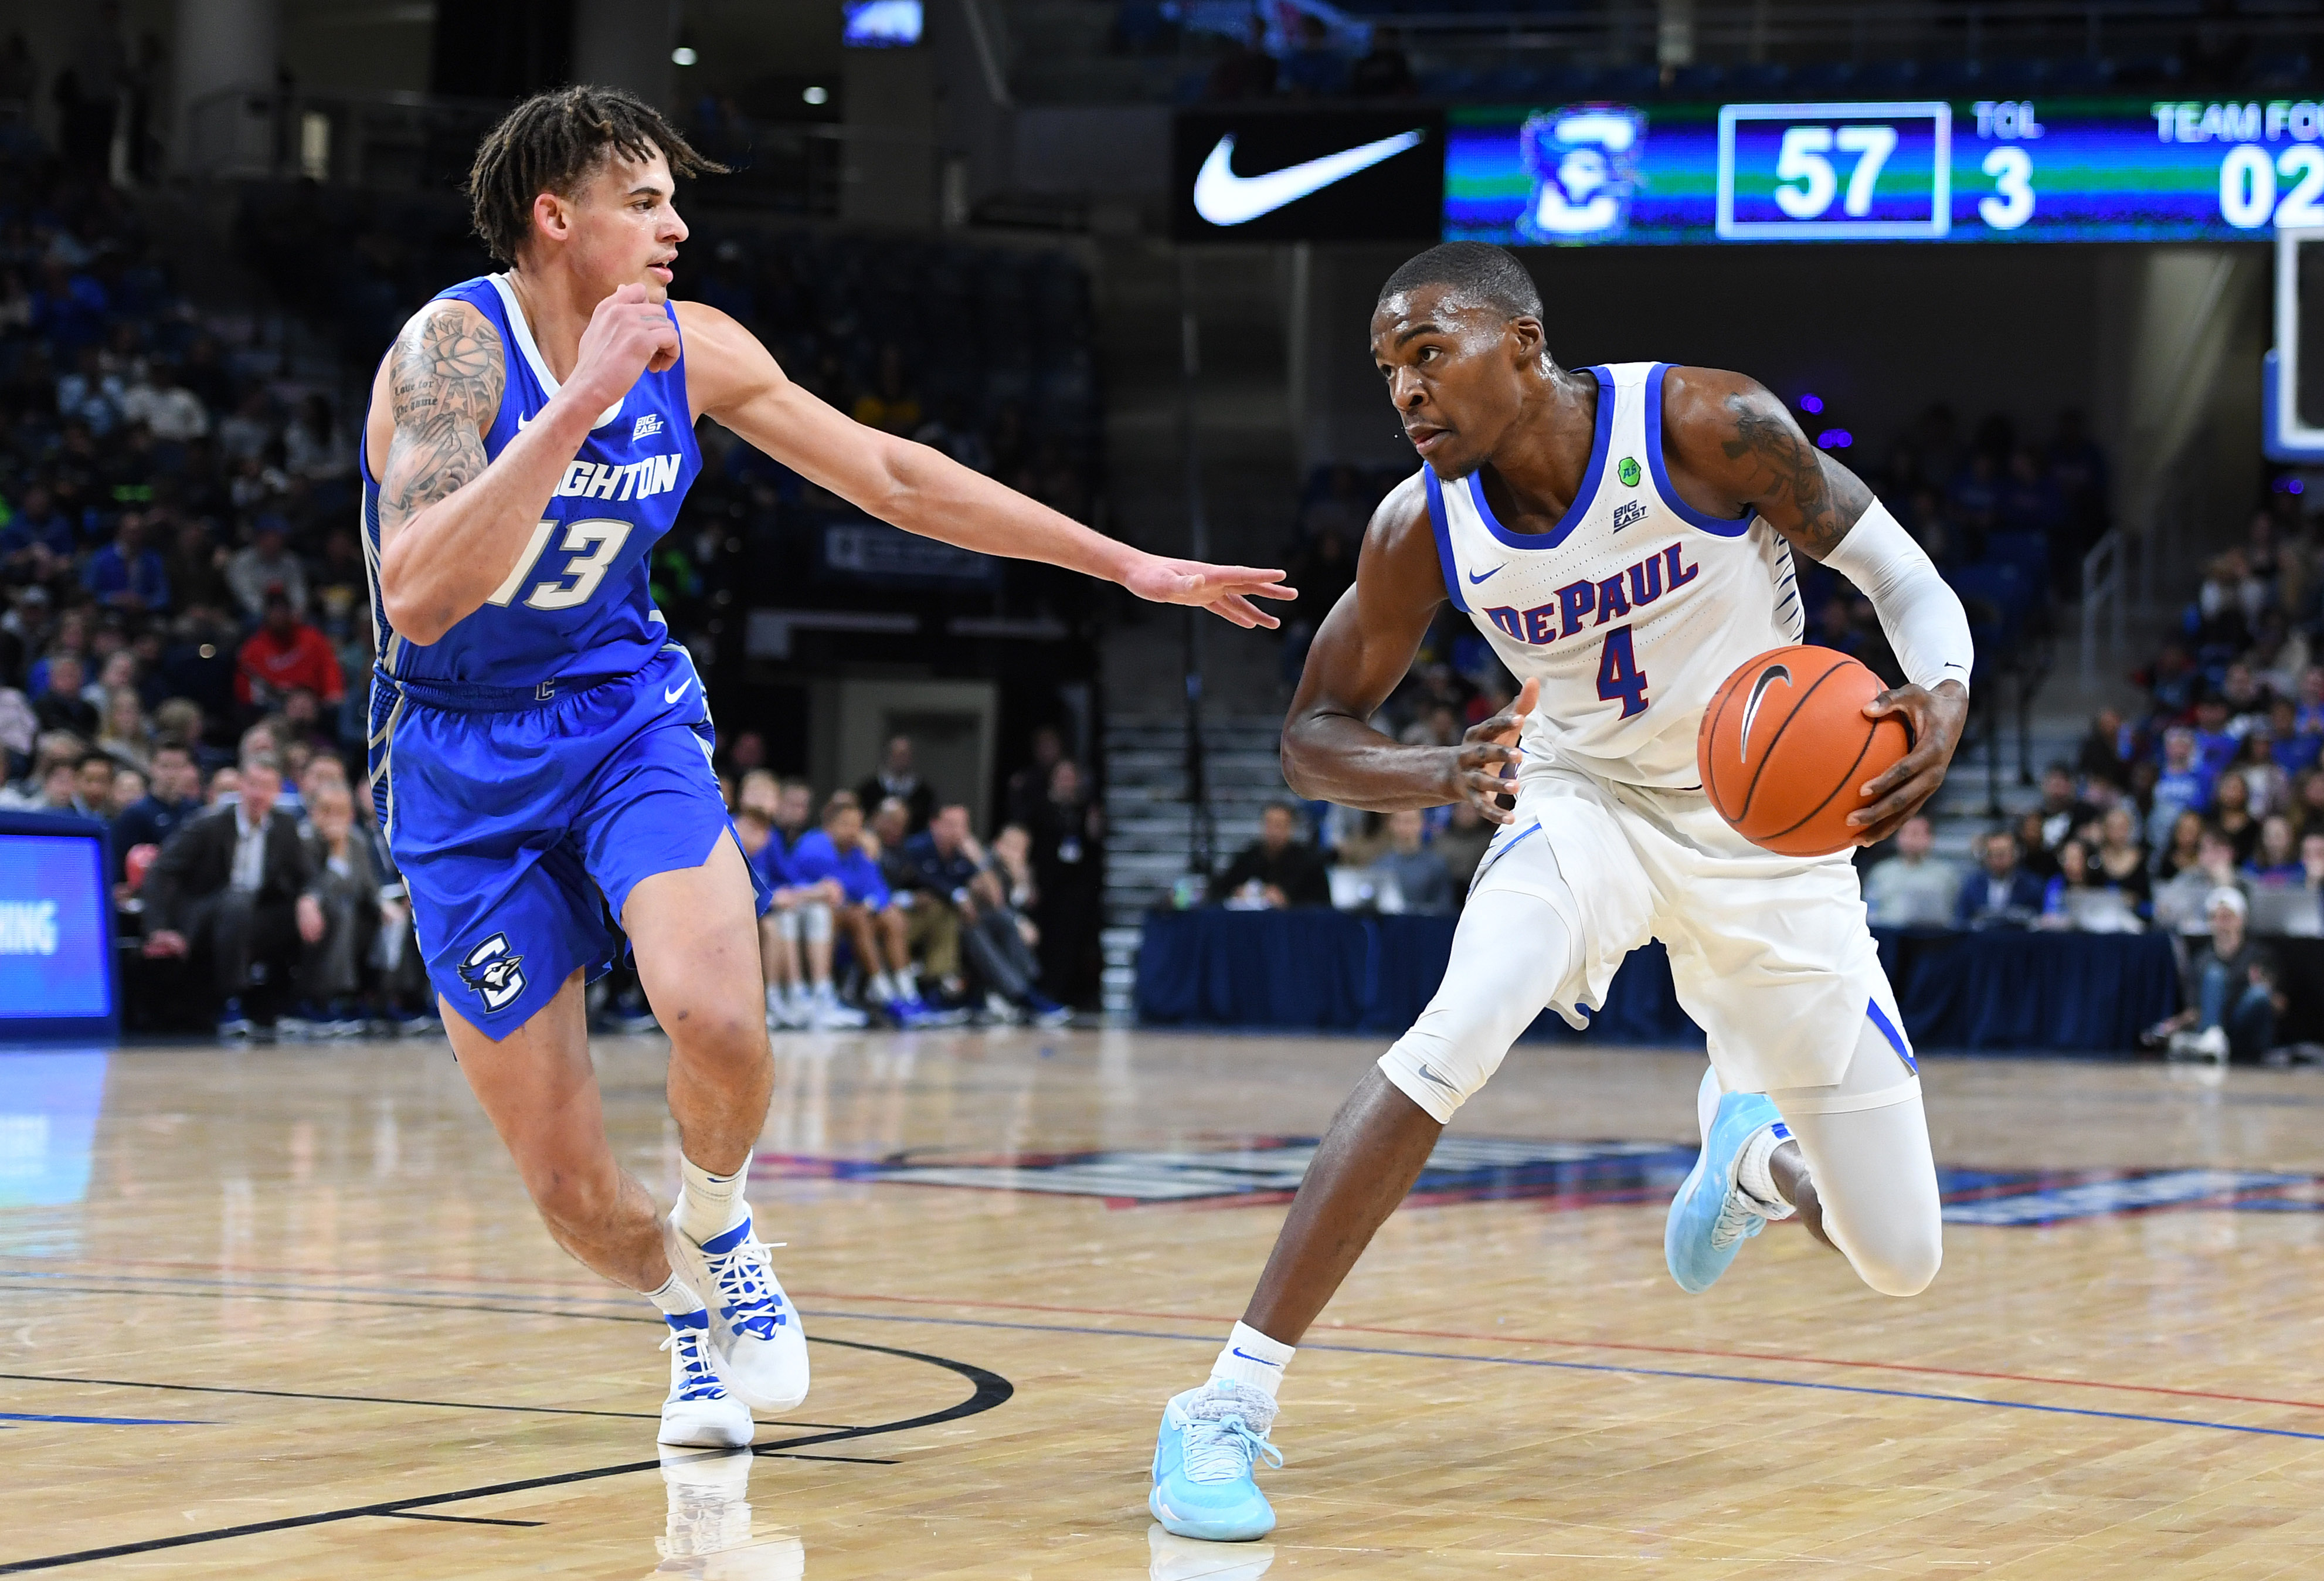 Jan 25, 2020; Chicago, Illinois, USA; DePaul Blue Demons forward Paul Reed (4) dribbles the ball against Creighton Bluejays forward Christian Bishop (13) during the second half at Wintrust Arena. Mandatory Credit: